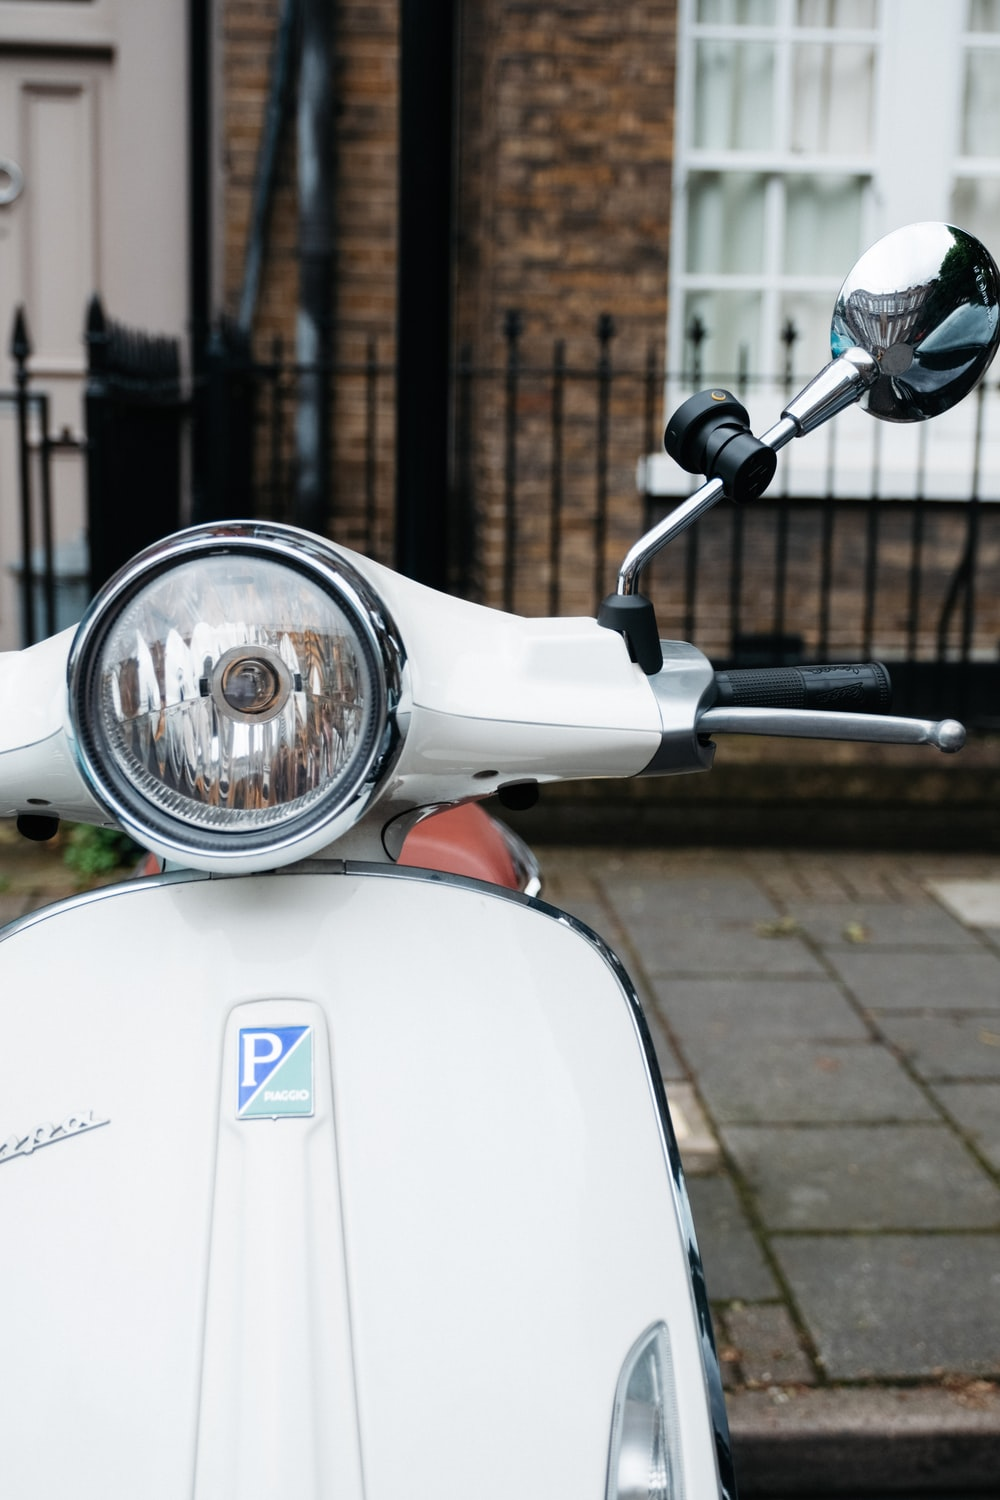 white and blue motor scooter parked beside brown brick wall